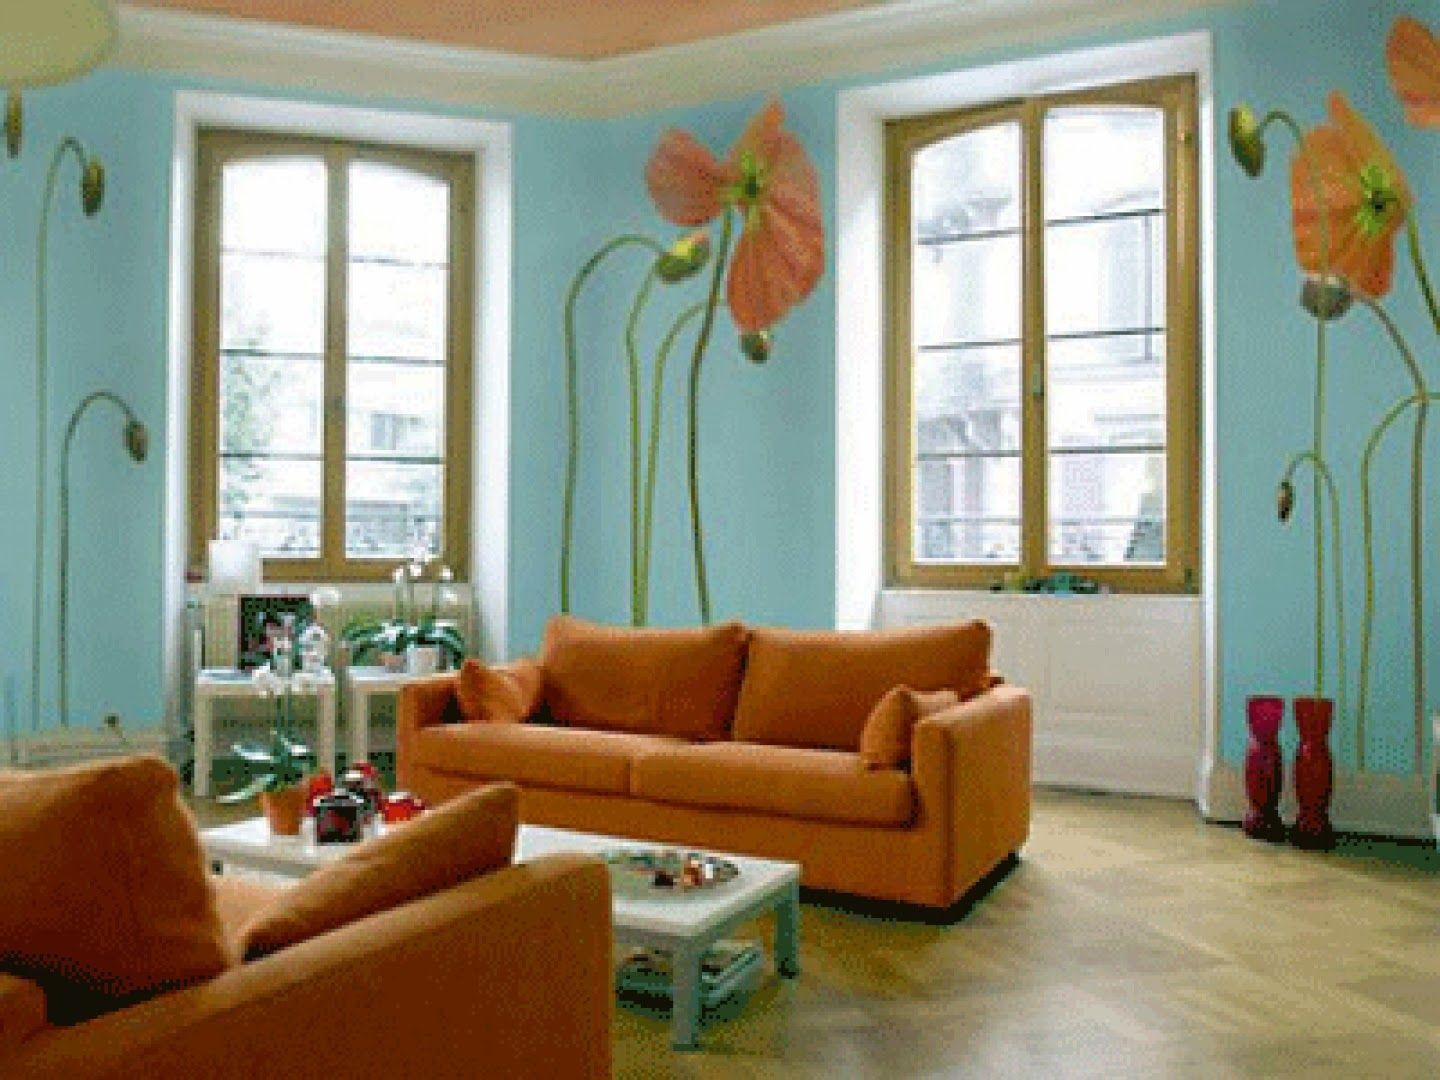 Light blue bedroom paint colors - Interior Awesome Living Room Decoration With Light Blue Asian Paint Wall Colors Along With